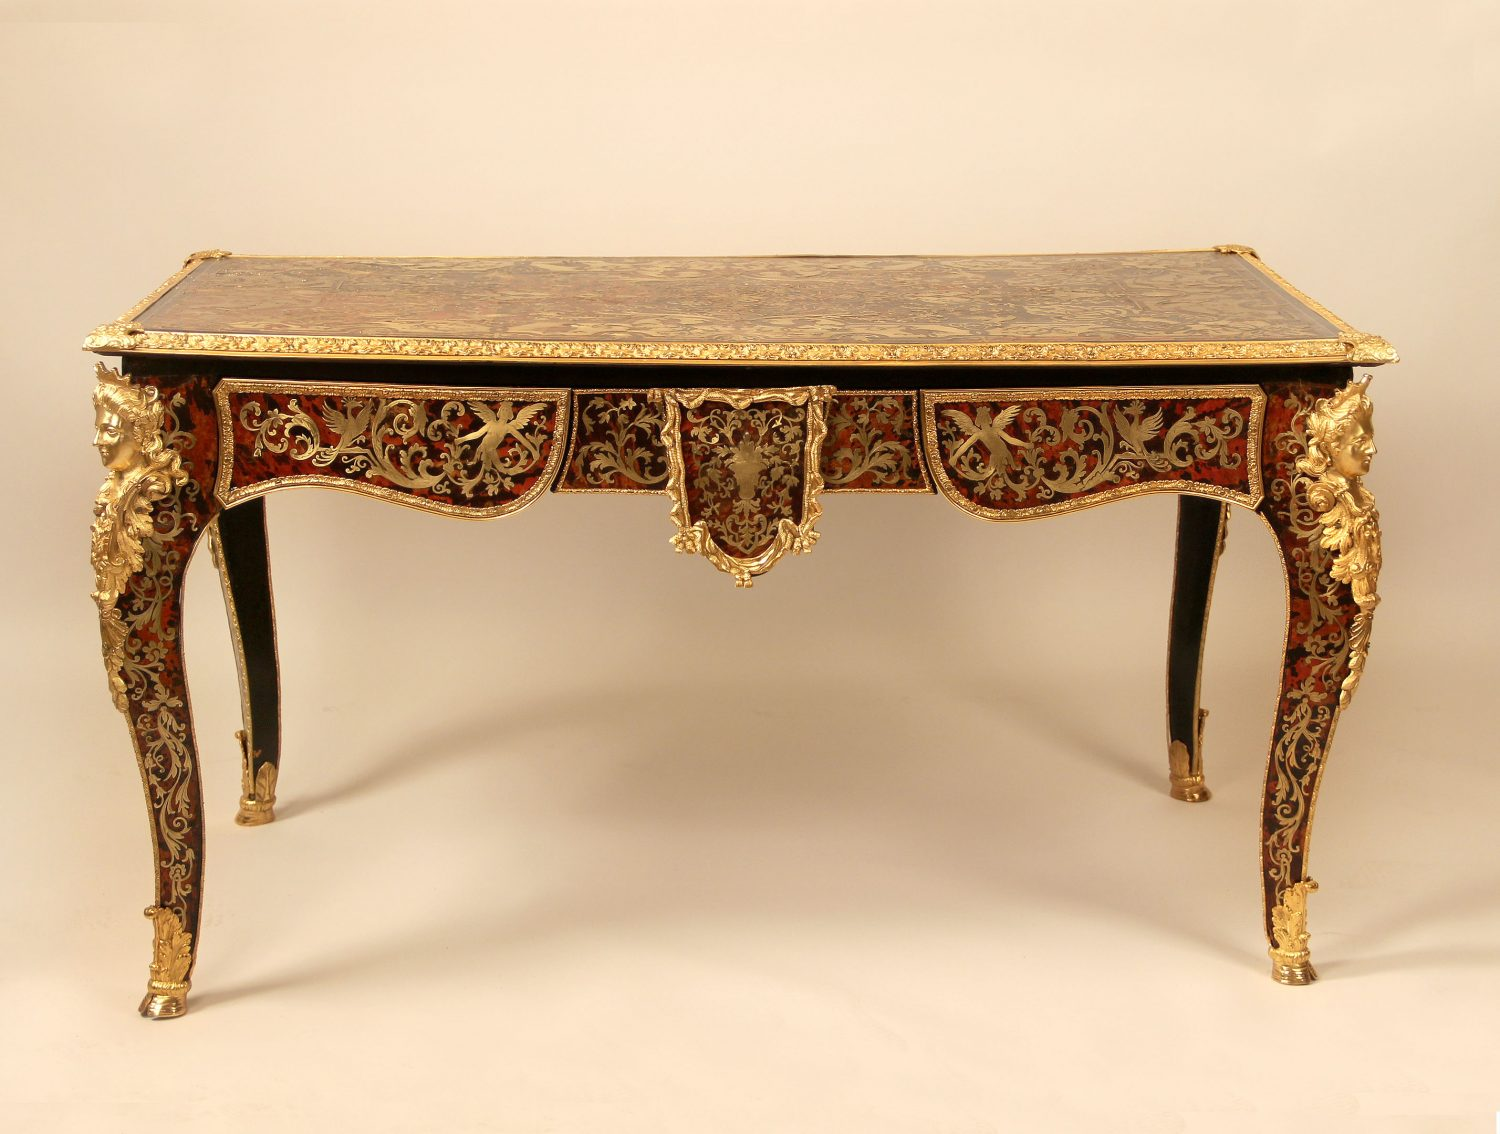 19th Century Antique Center Table Concept by French Cabinetmaker André Charles Boulle